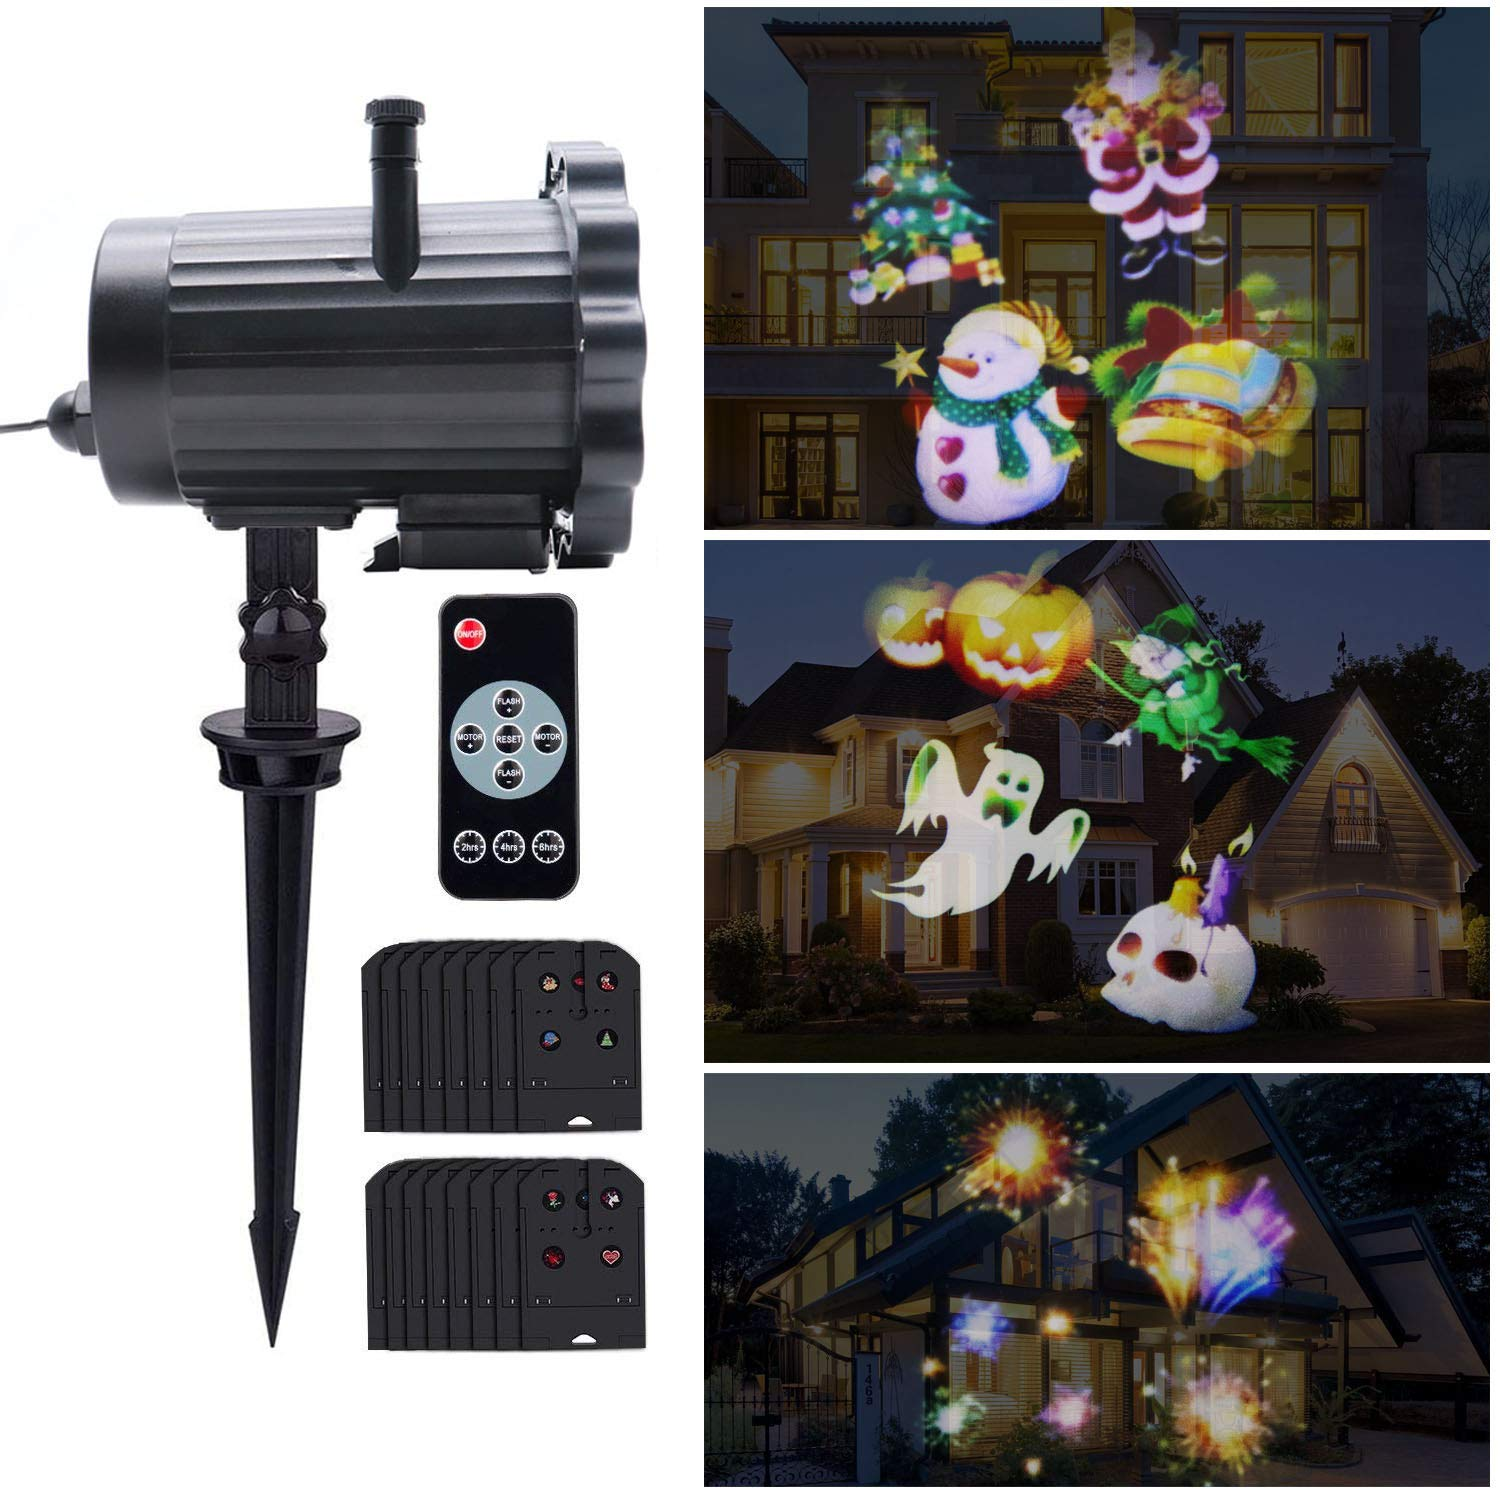 LED Card Projection Lamp, 16 Pattern Detachable Film Outdoor Waterproof Lawn Garden Lamp, Inserted Ground Or Wall Hanging Christmas Decoration Lamp